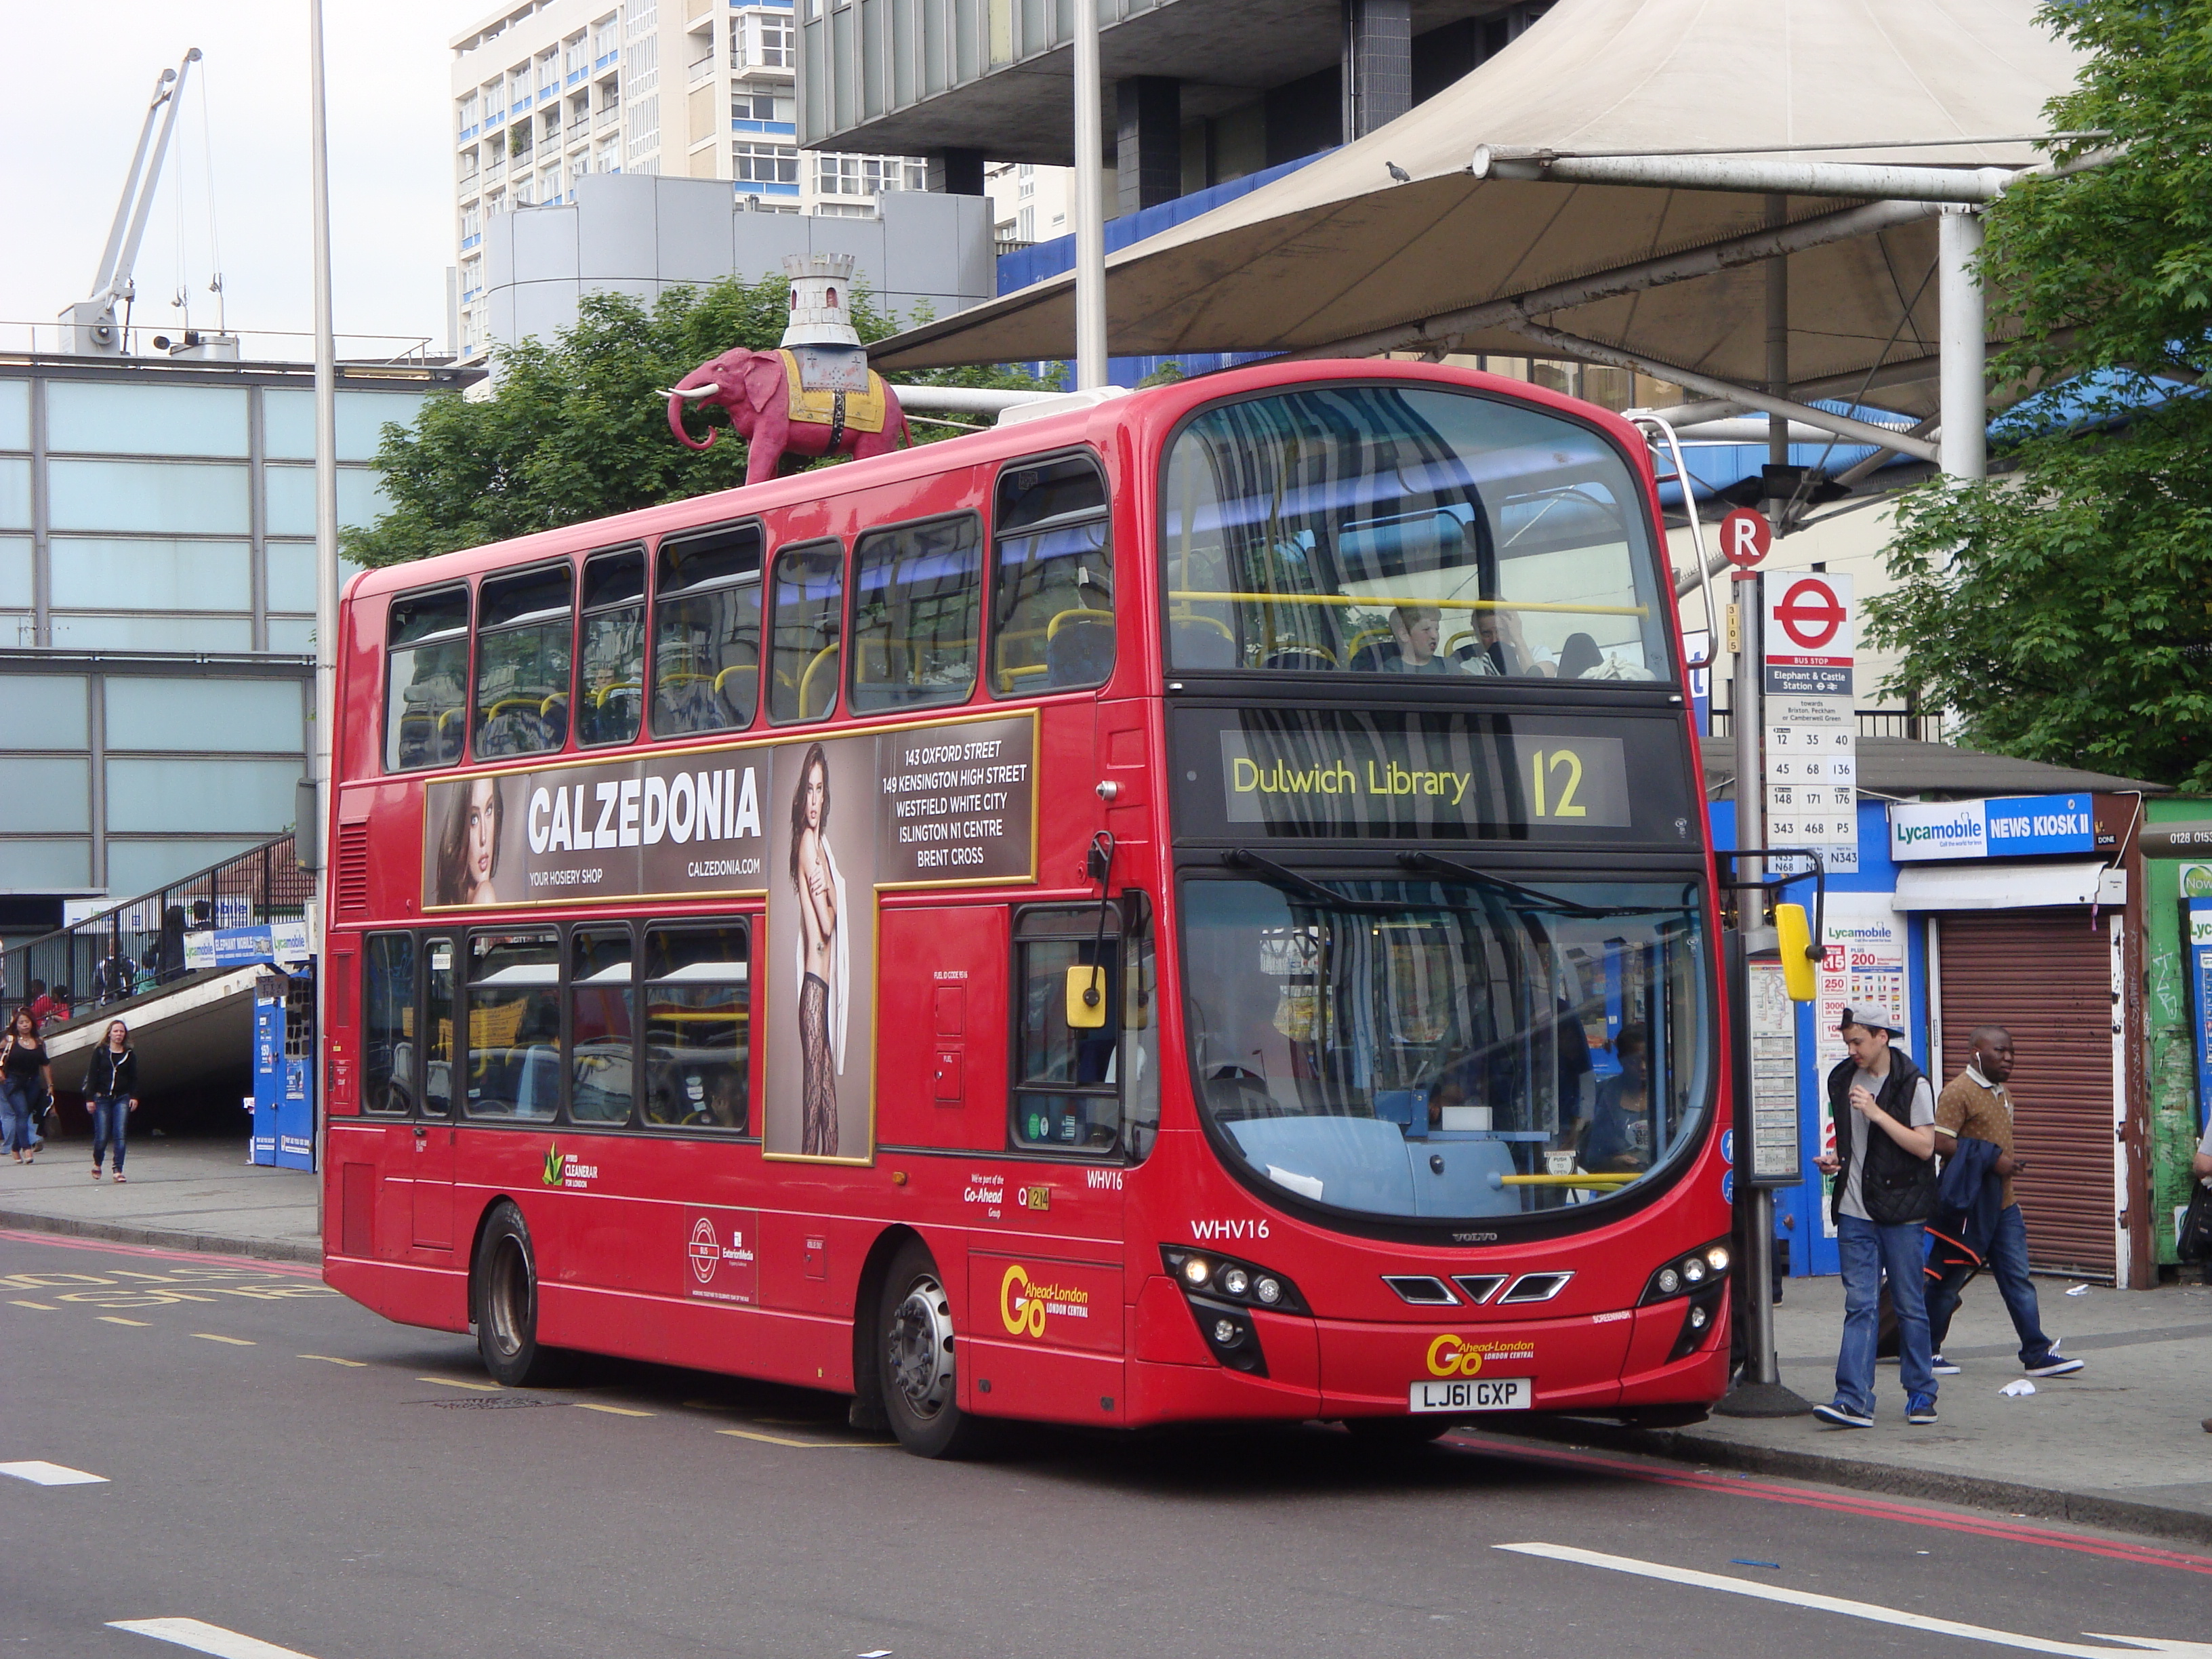 file:go ahead london bus route 12 - wikimedia commons